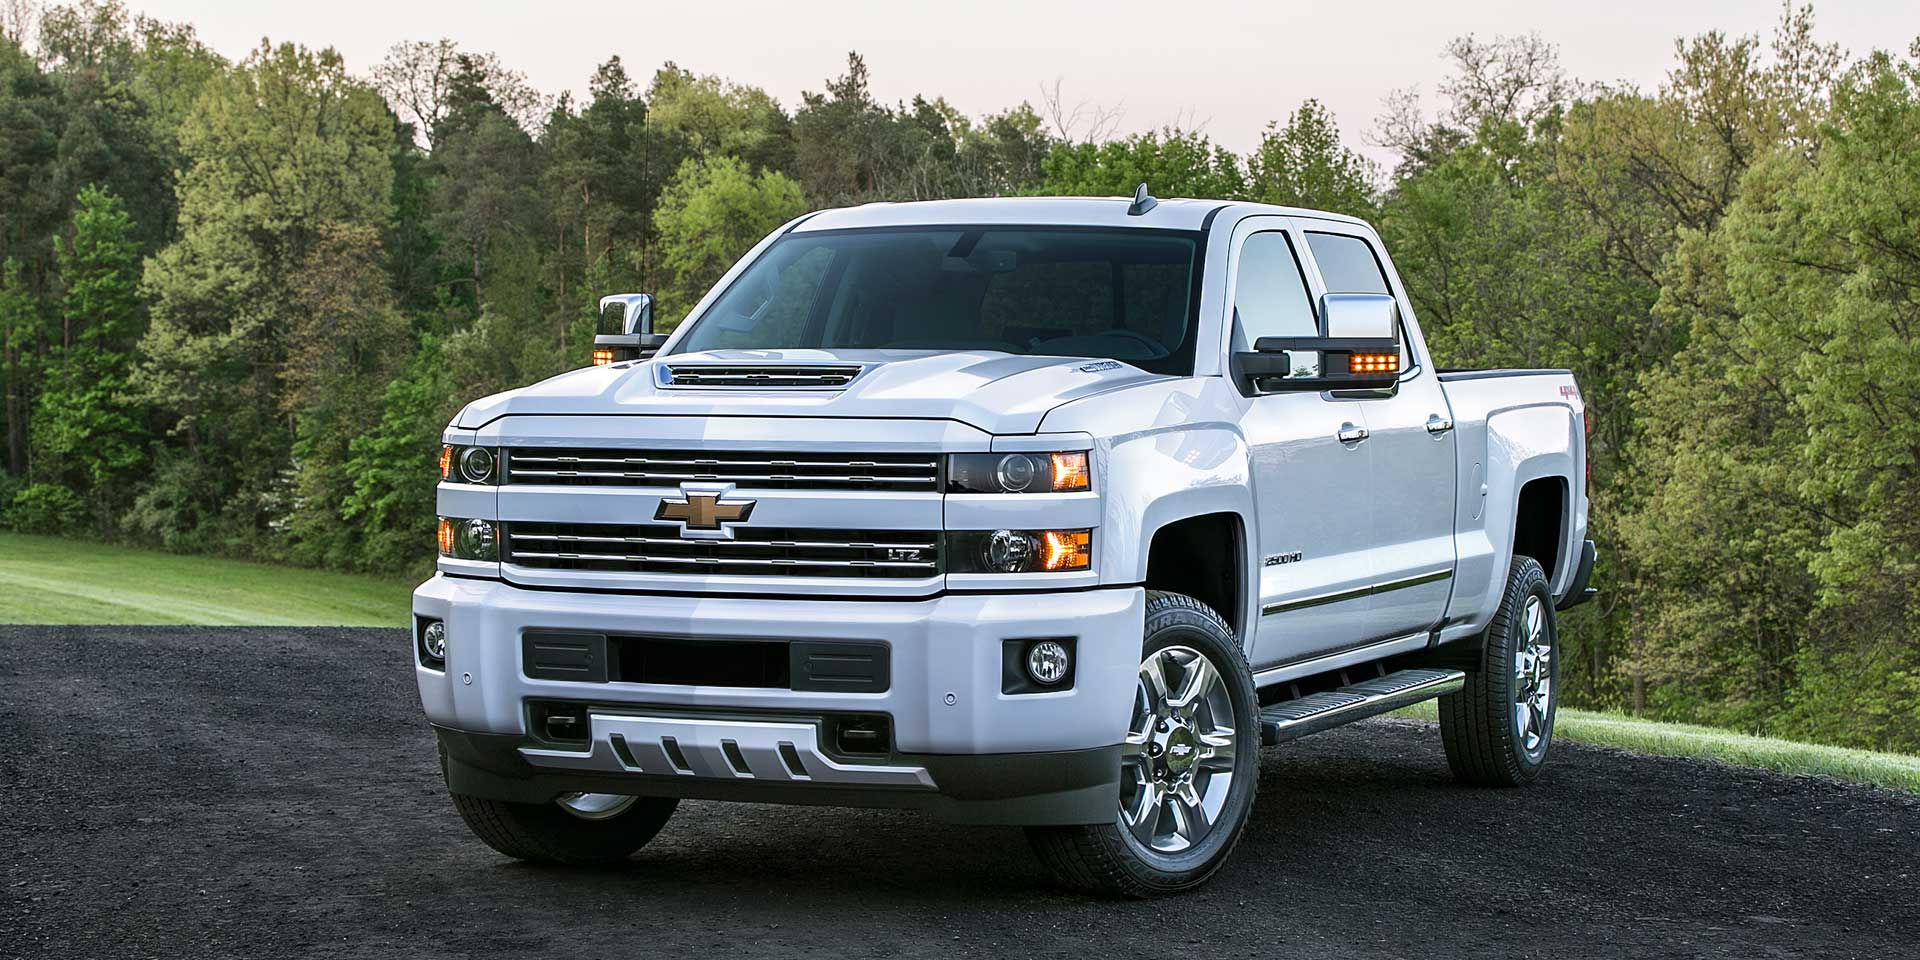 Used Cars For Sale New Cars For Sale Car Dealers Cars Chicago - Chevrolet dealer chicago